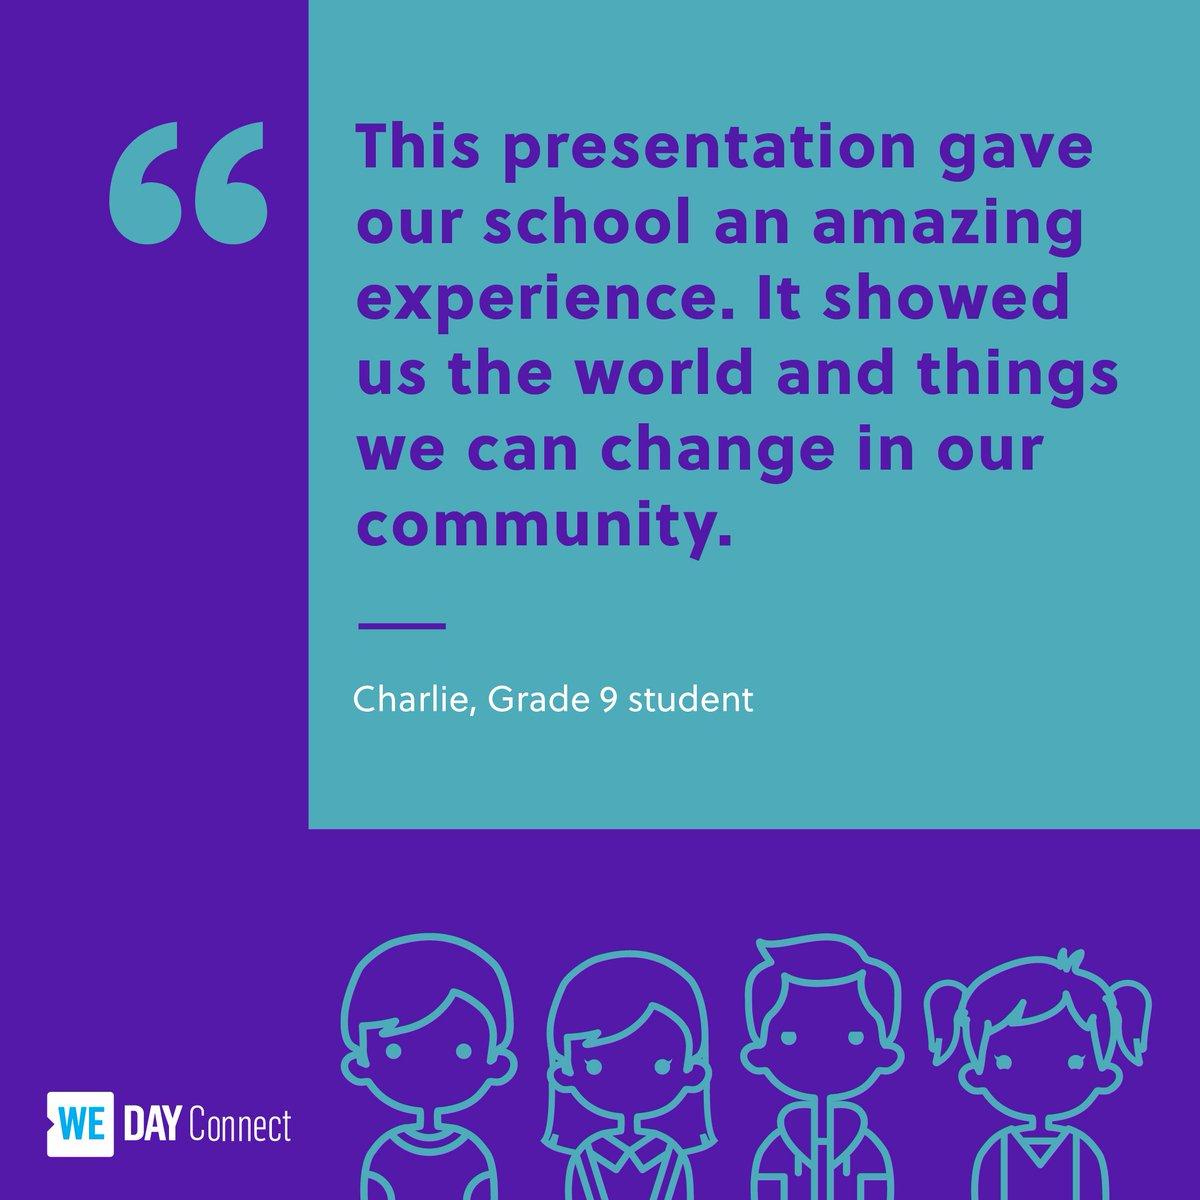 WE Day Connect gives students like Charlie a chance to connect with like-minded young leaders through technology. 👨🏽‍💻👩‍💻 Join us on Oct 8th! Register for #WEdayConnect now: ow.ly/YNSV50wraZb